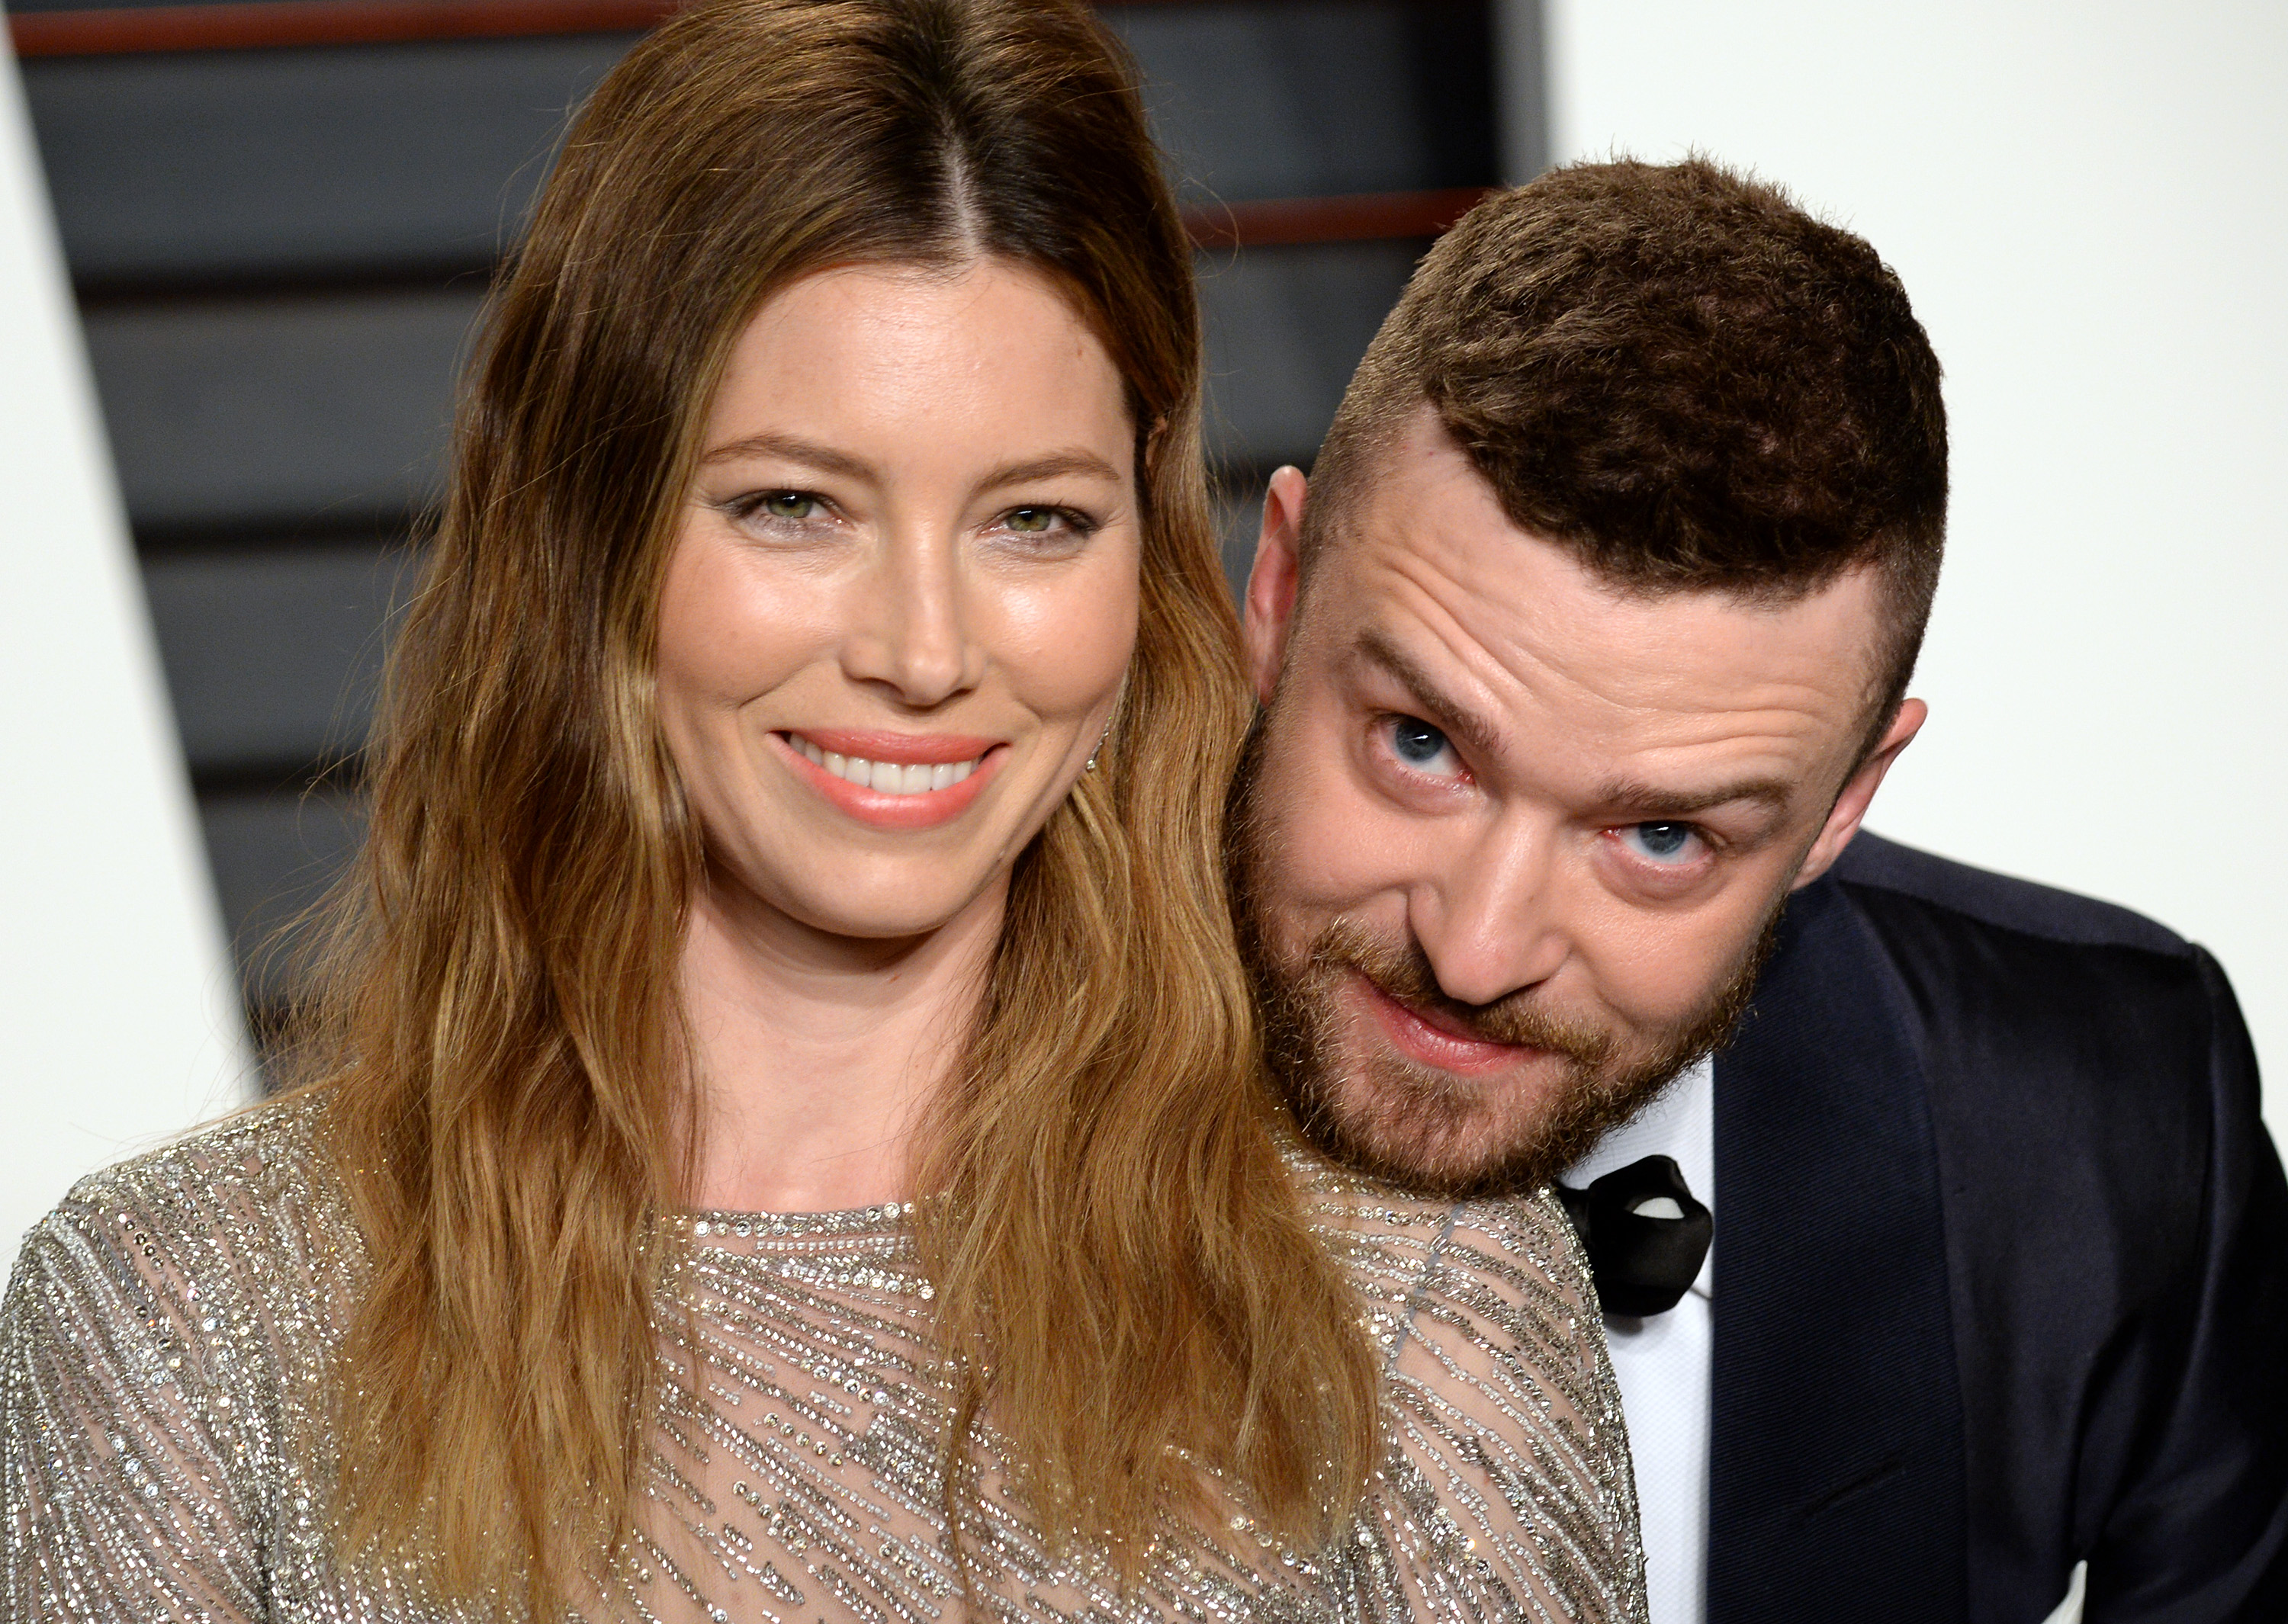 BEVERLY HILLS, CA - FEBRUARY 28:  Jessica Biel and Justin Timberlake attend the 2016 Vanity Fair Oscar Party hosted By Graydon Carter at Wallis Annenberg Center for the Performing Arts